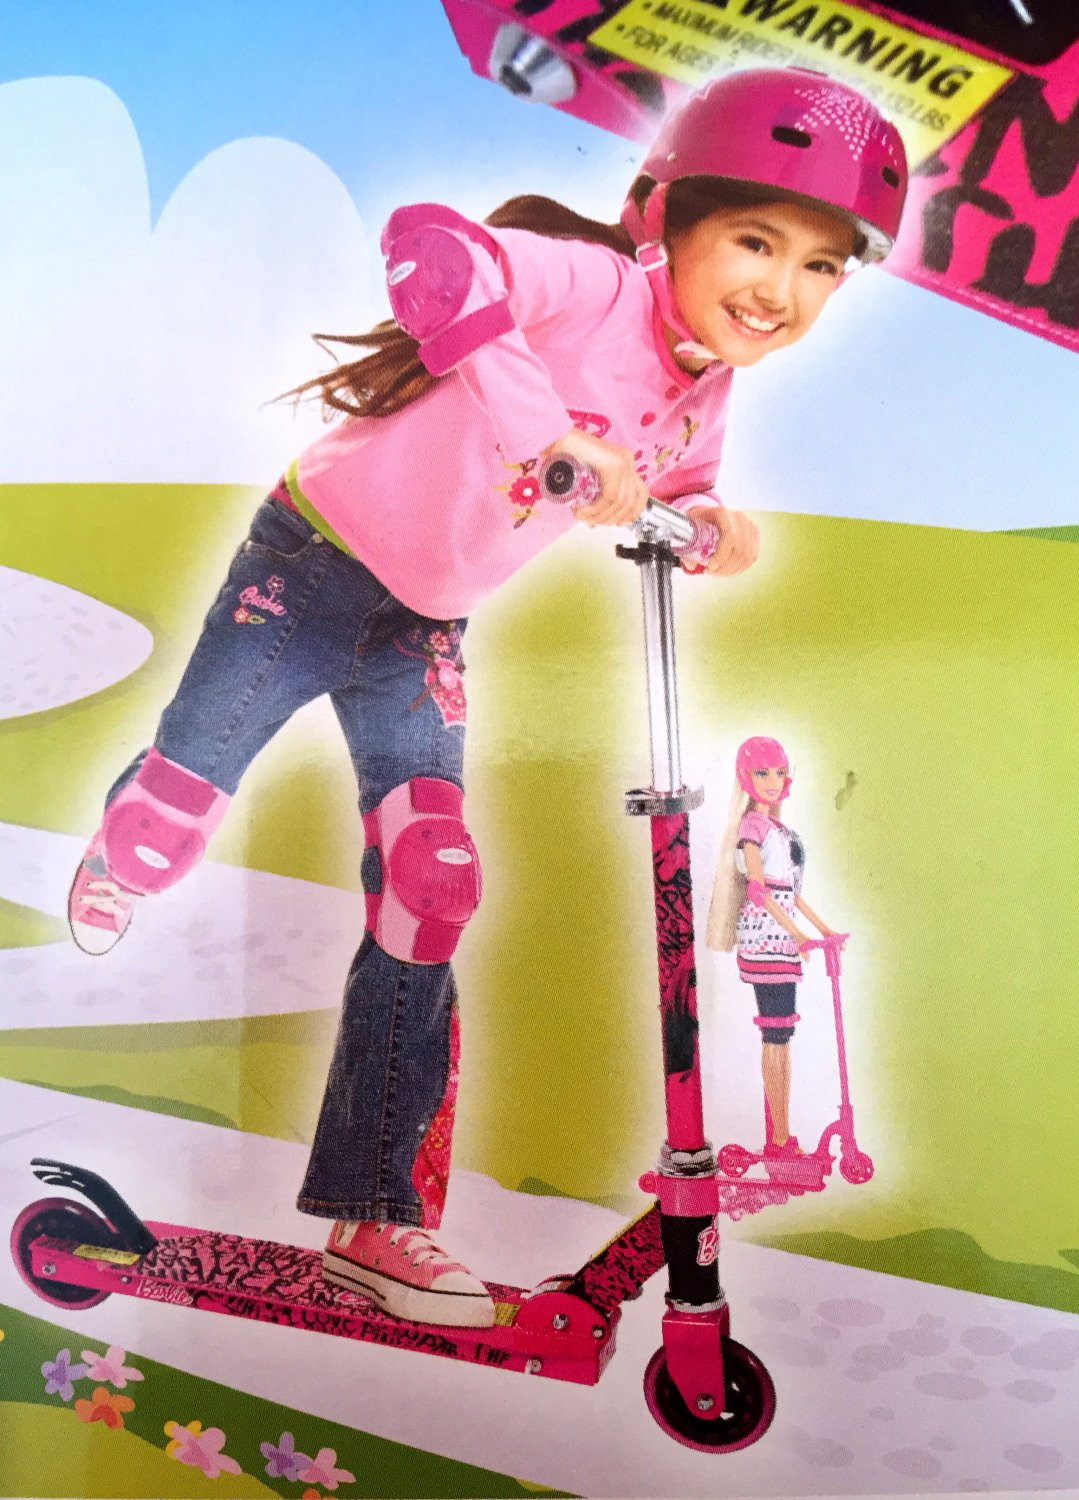 Barbie Super Cute Folding Scooter Pink/Black Hot Toy Girls Gift Ages 5+